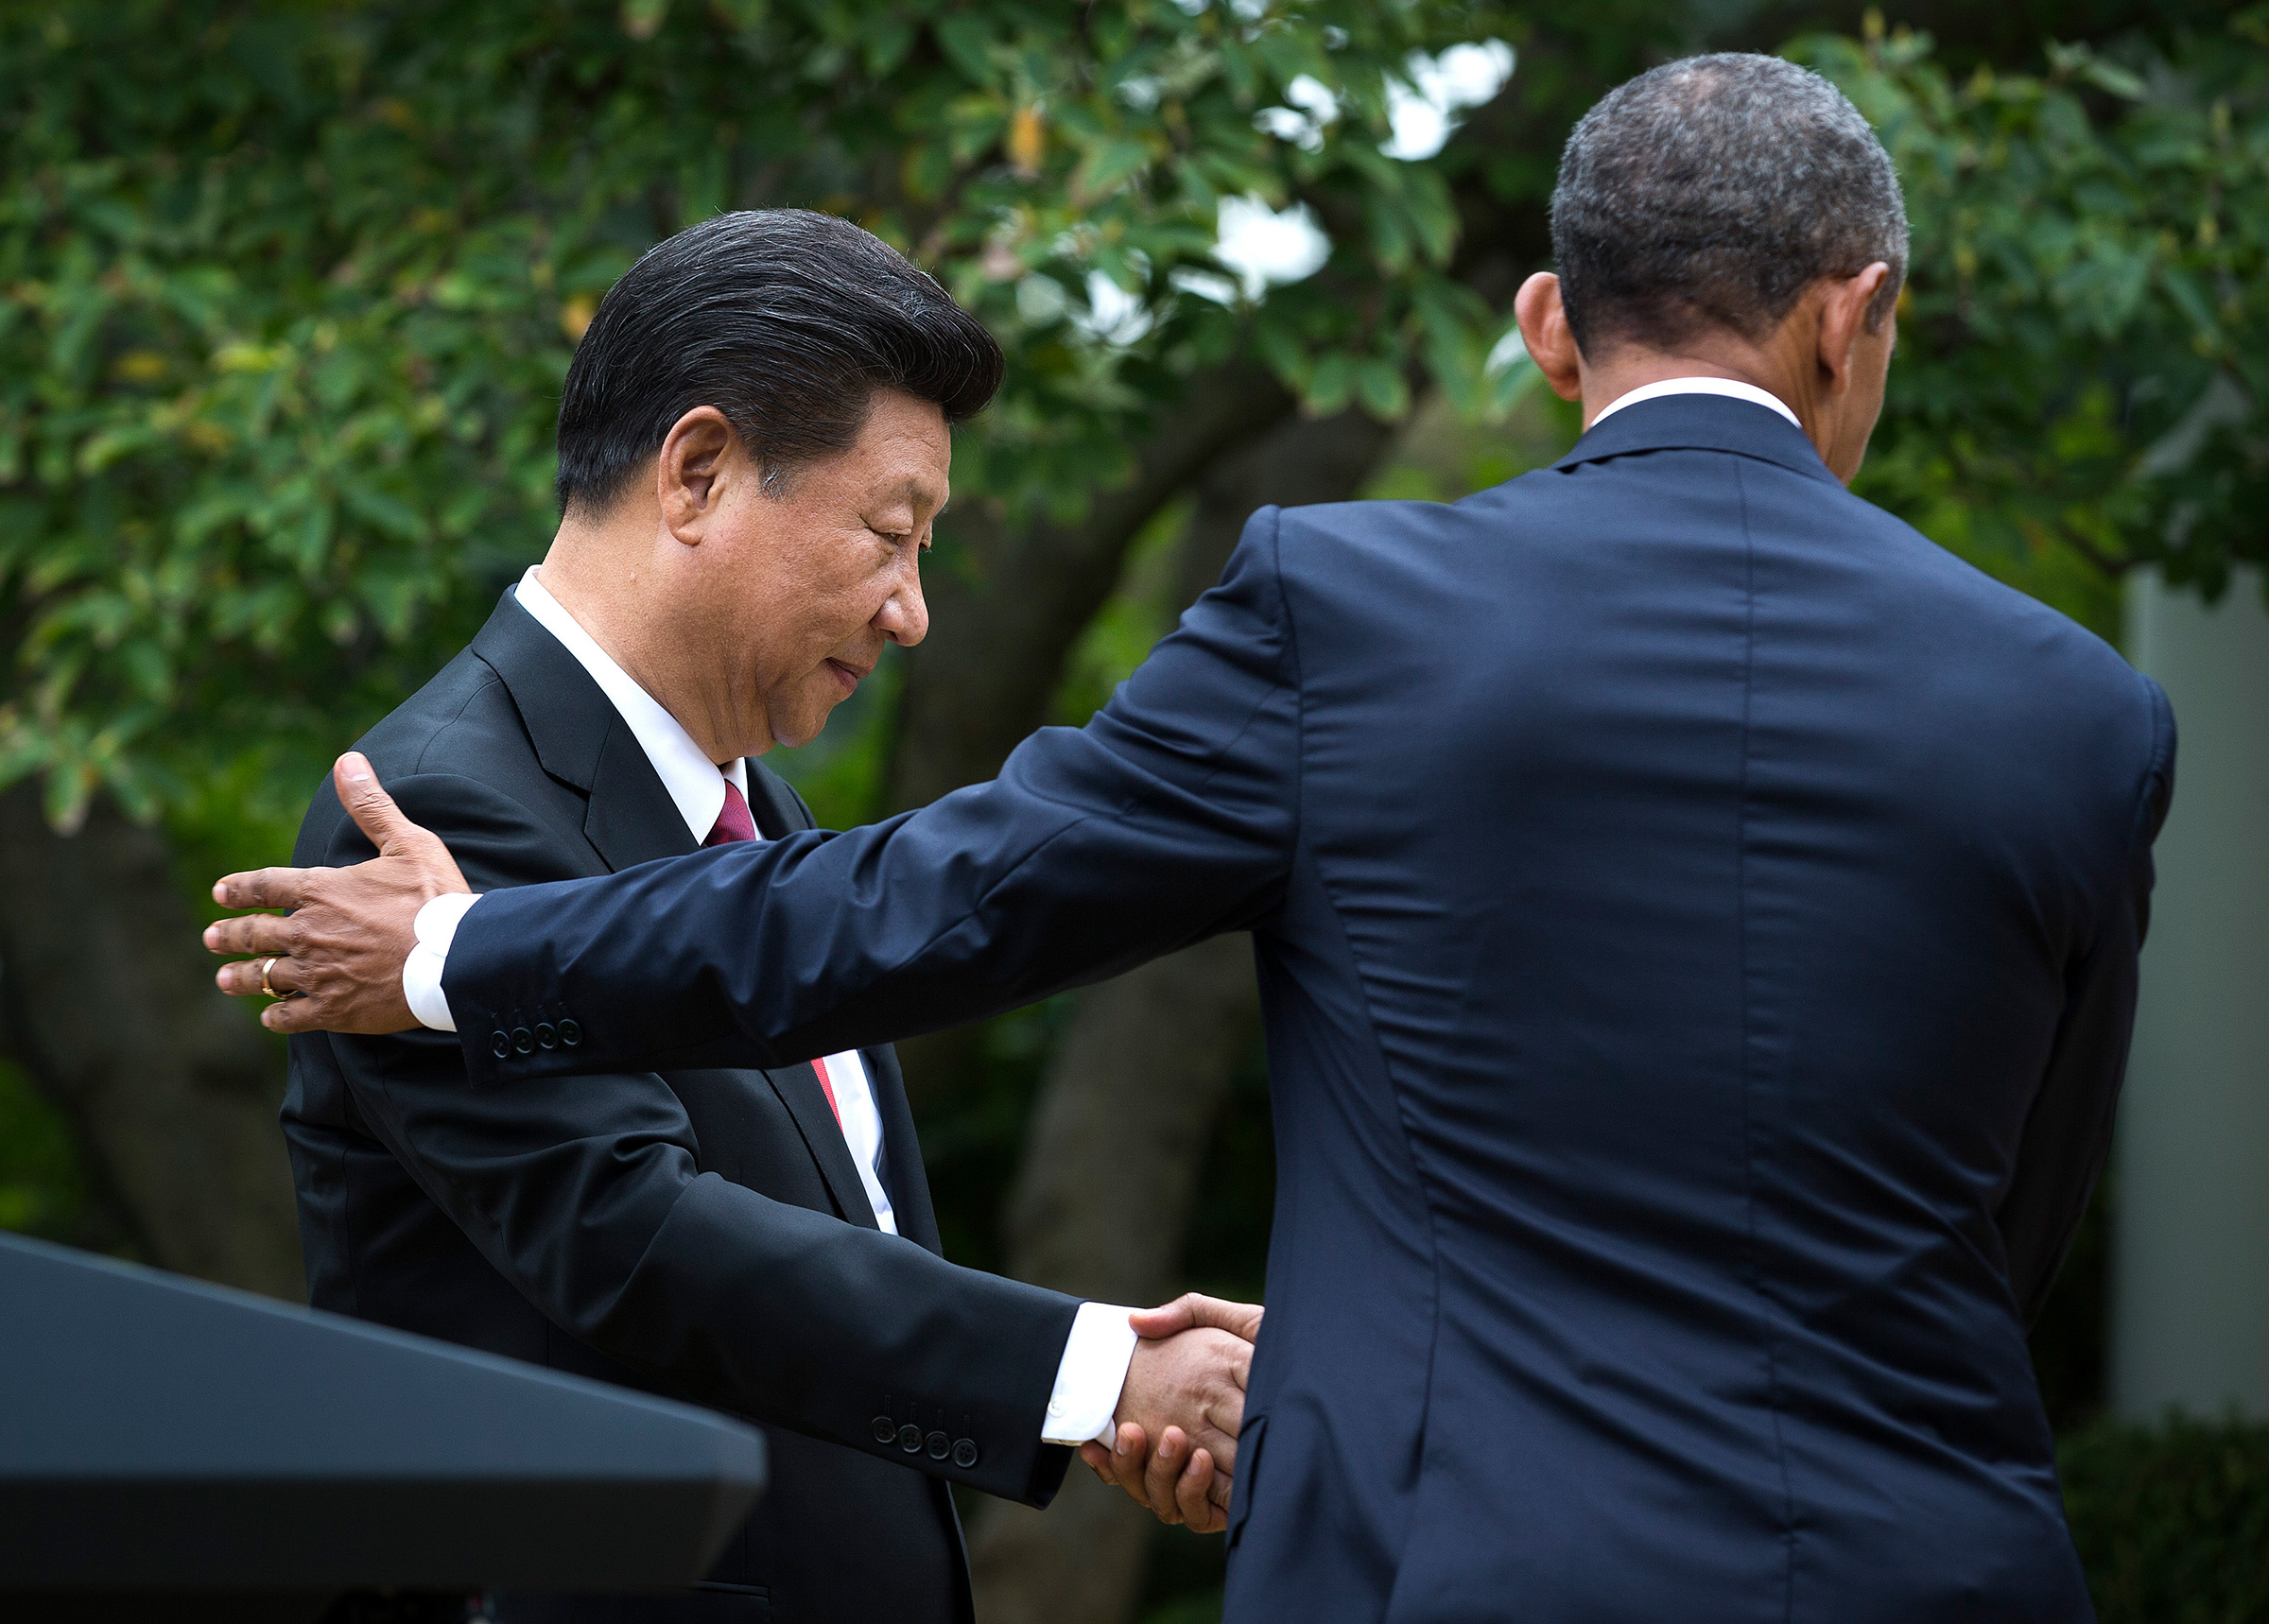 President Barack Obama and Chinese President Xi Jinping at a joint news conference in the Rose Garden at the White House, in Washington, on Sept. 25, 2015.